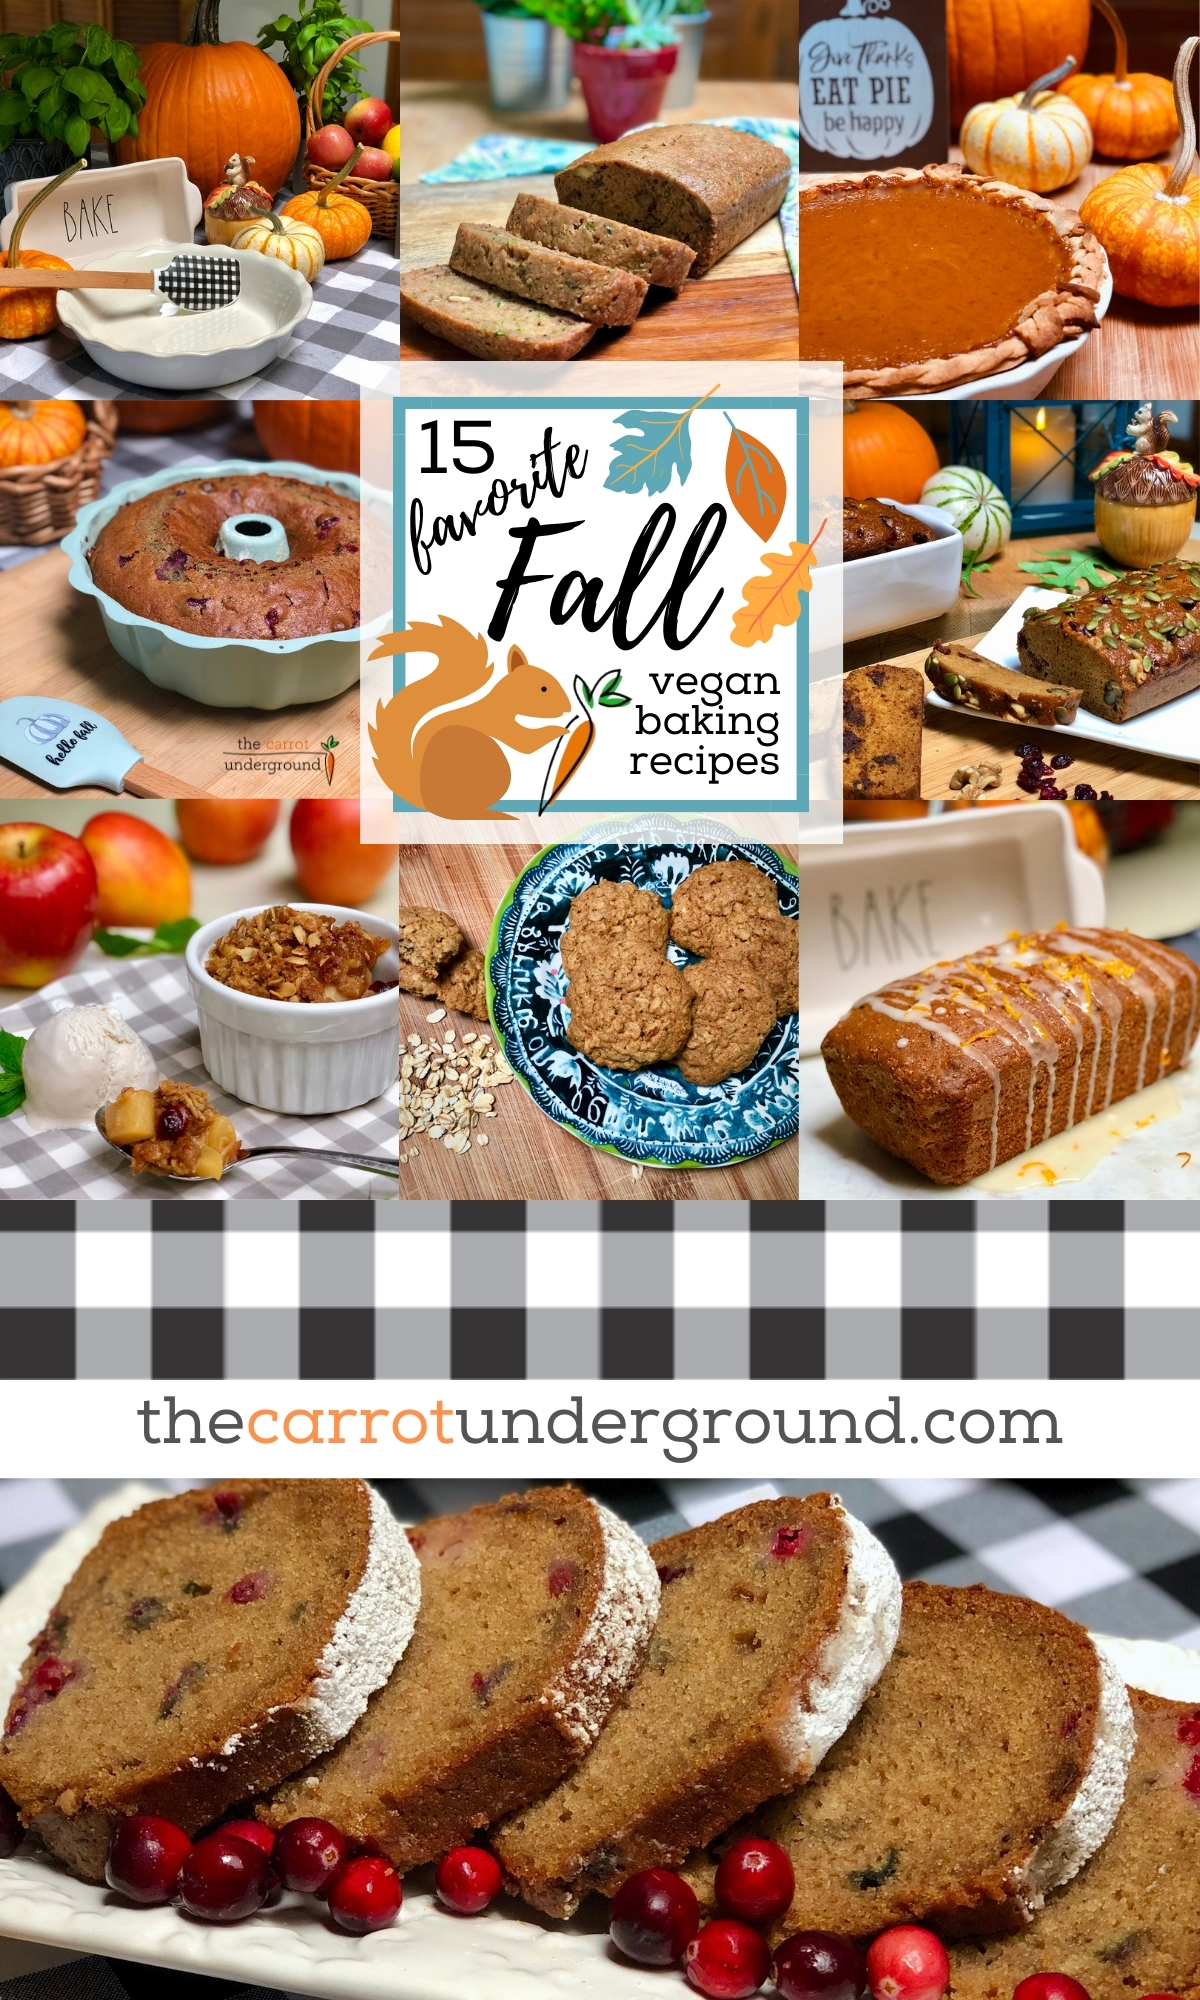 Images of 15 different fall-inspired vegan baked goods, including applesauce cake, pumpkin pie, oatmeal cookies, and zucchini bread.